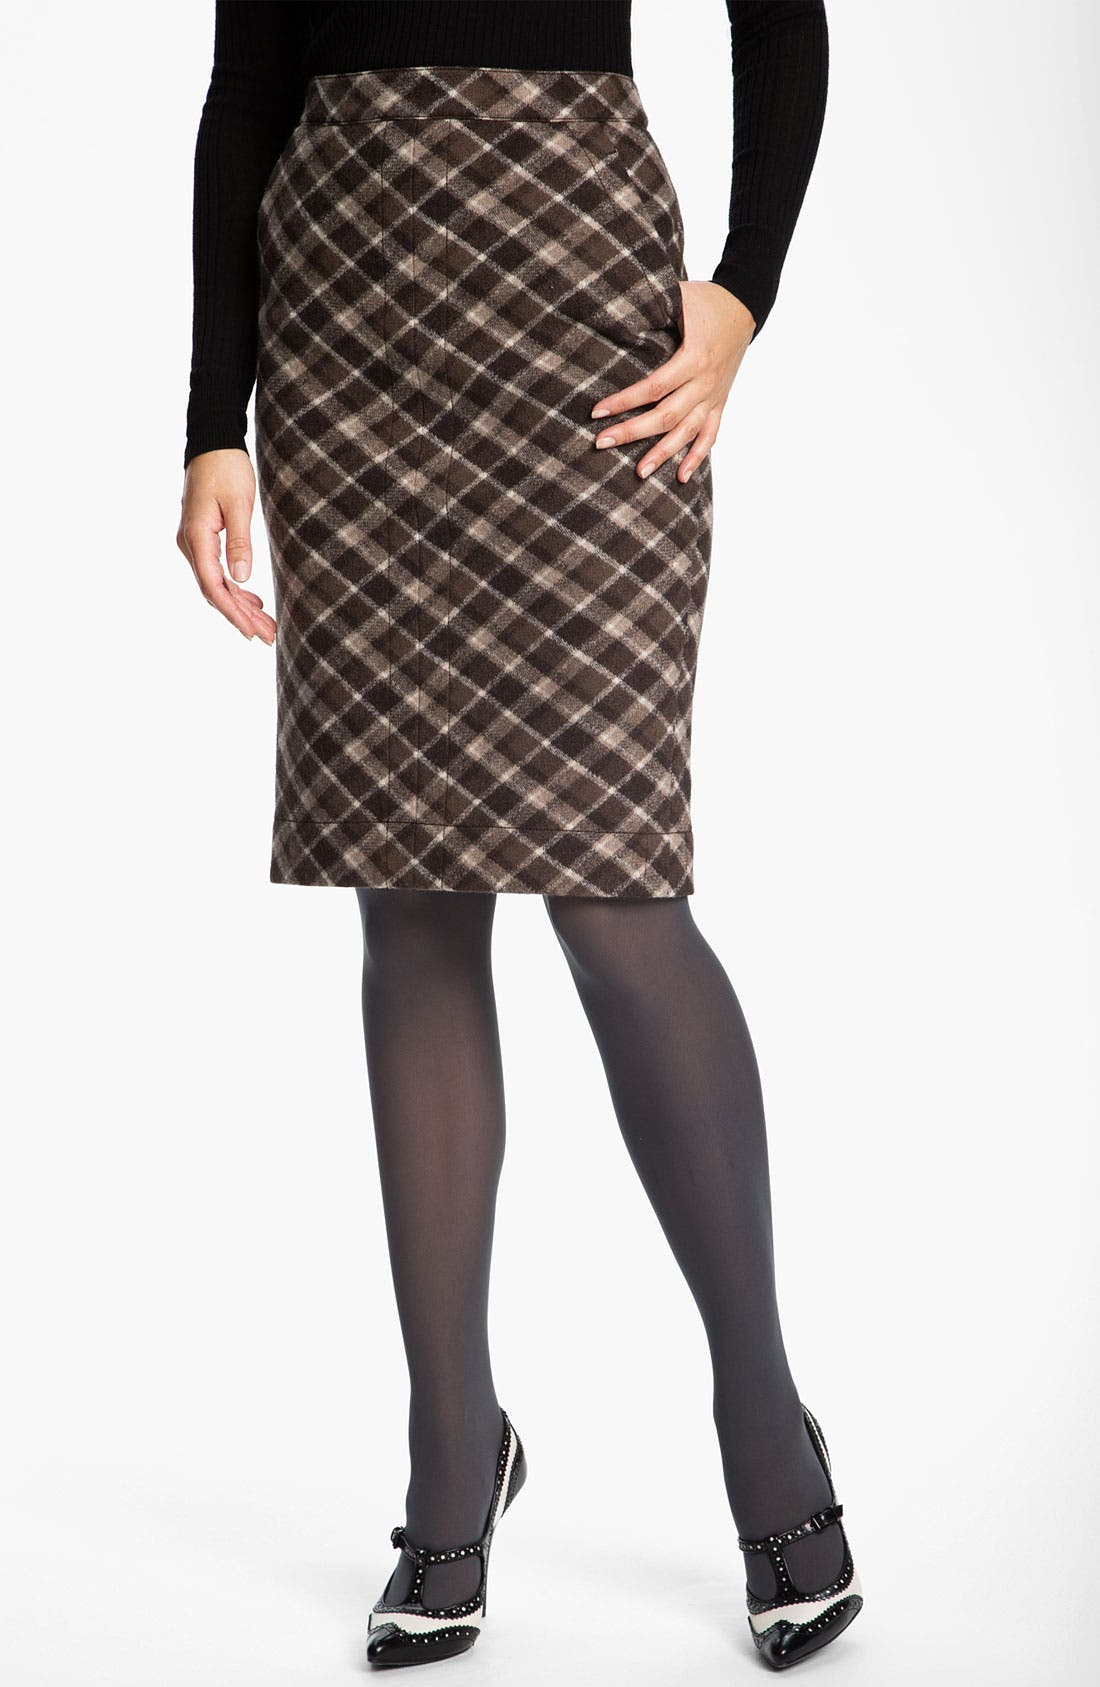 Alternate Image 1 Selected - Tory Burch 'Hawthorne' Pencil Skirt (Online Exclusive)